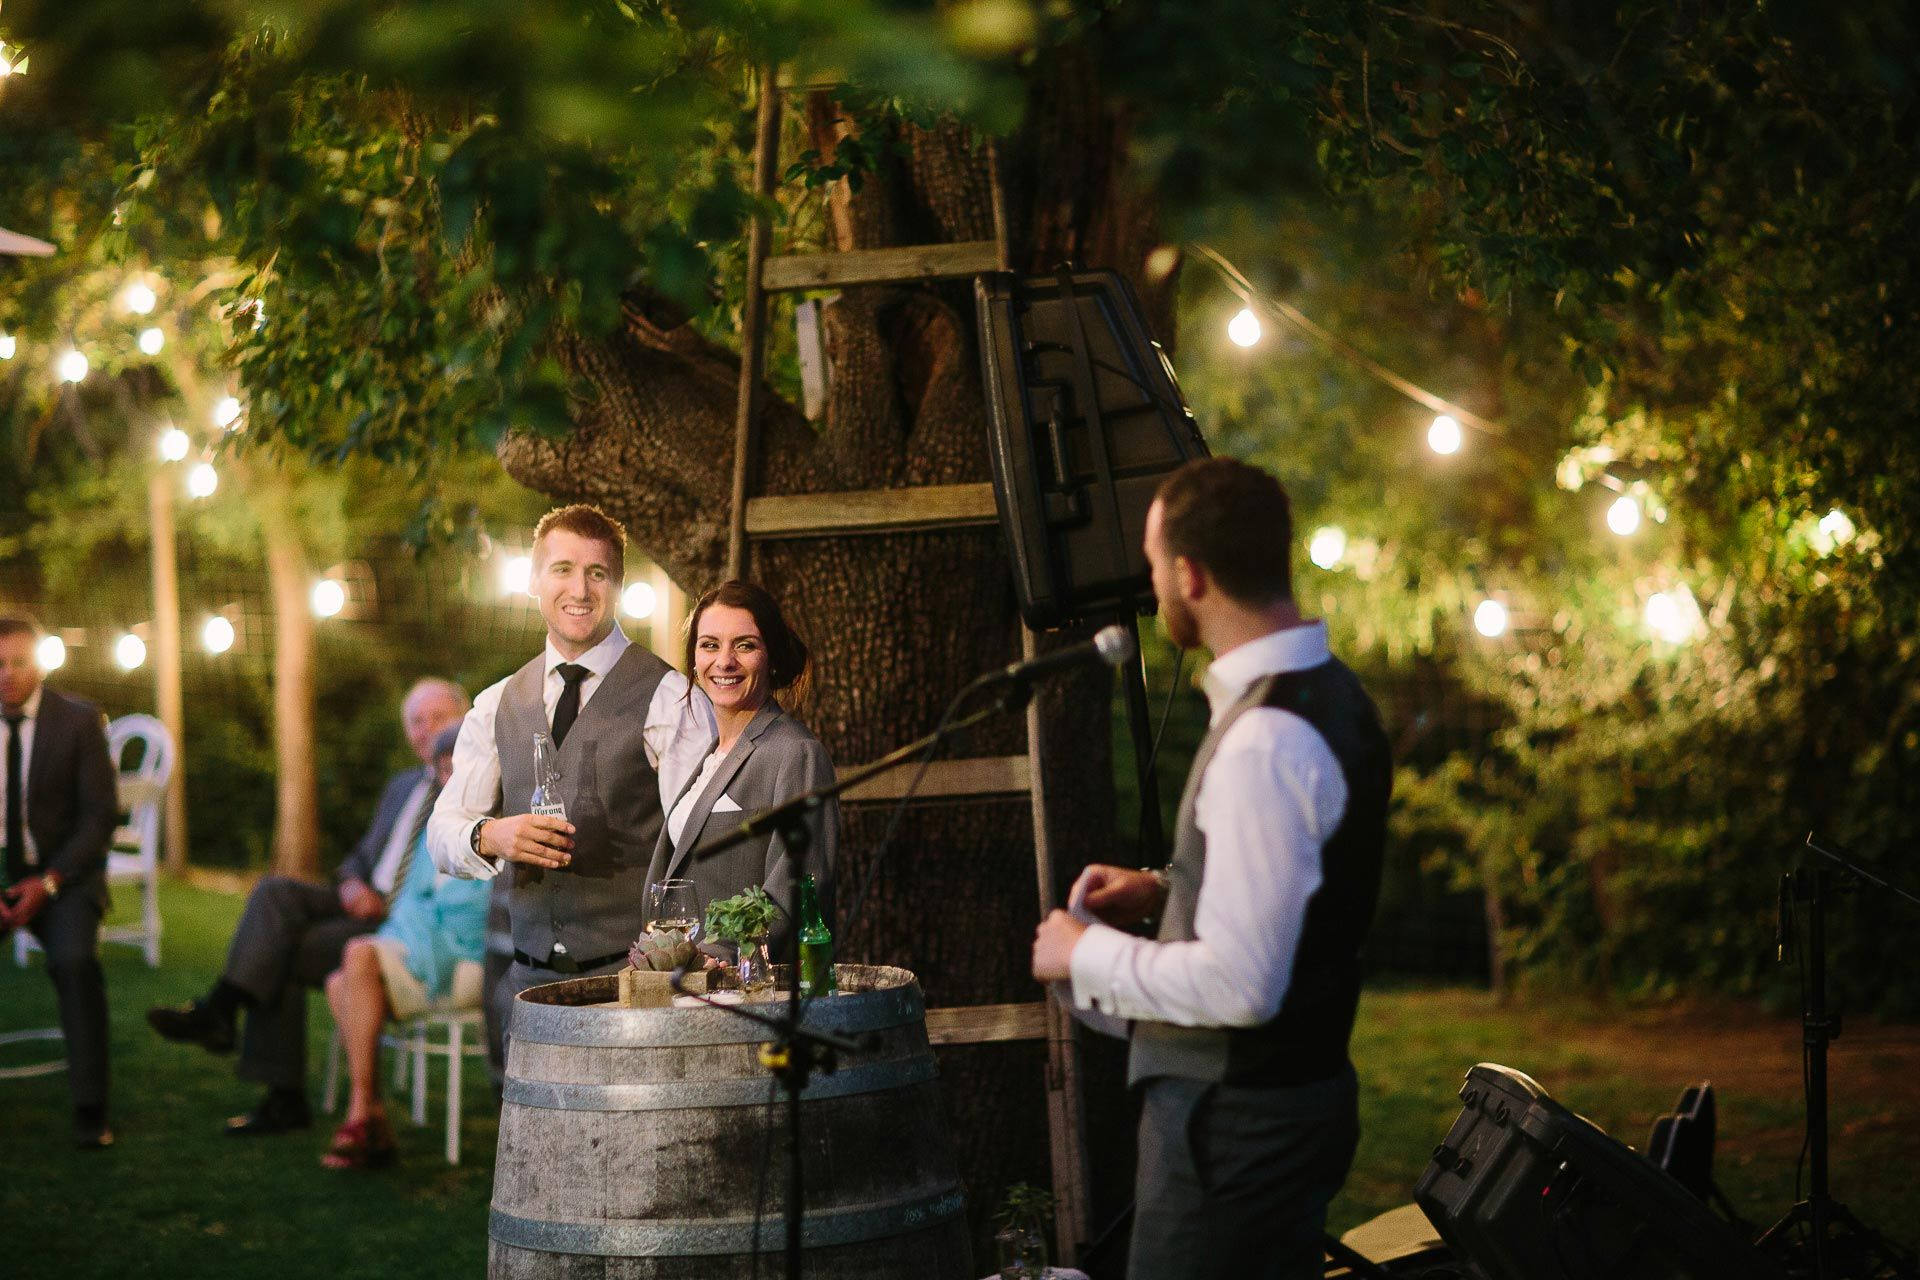 The White House In Adelaide Hills Little German Town Of Hahndorf Is A Rustic Wedding VenuesWhite